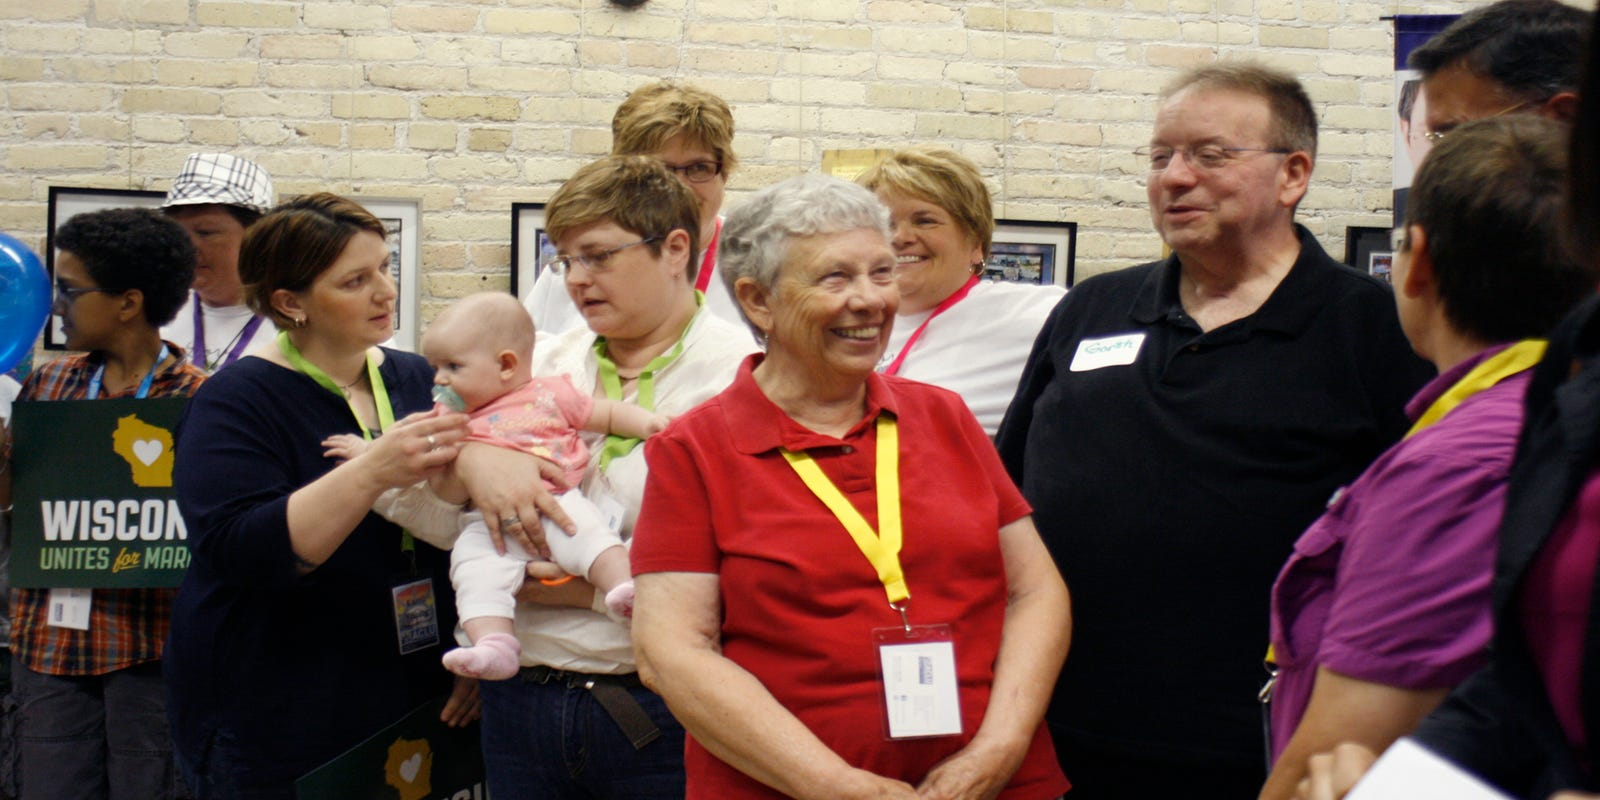 Indiana, Wisconsin couples in gay marriage case